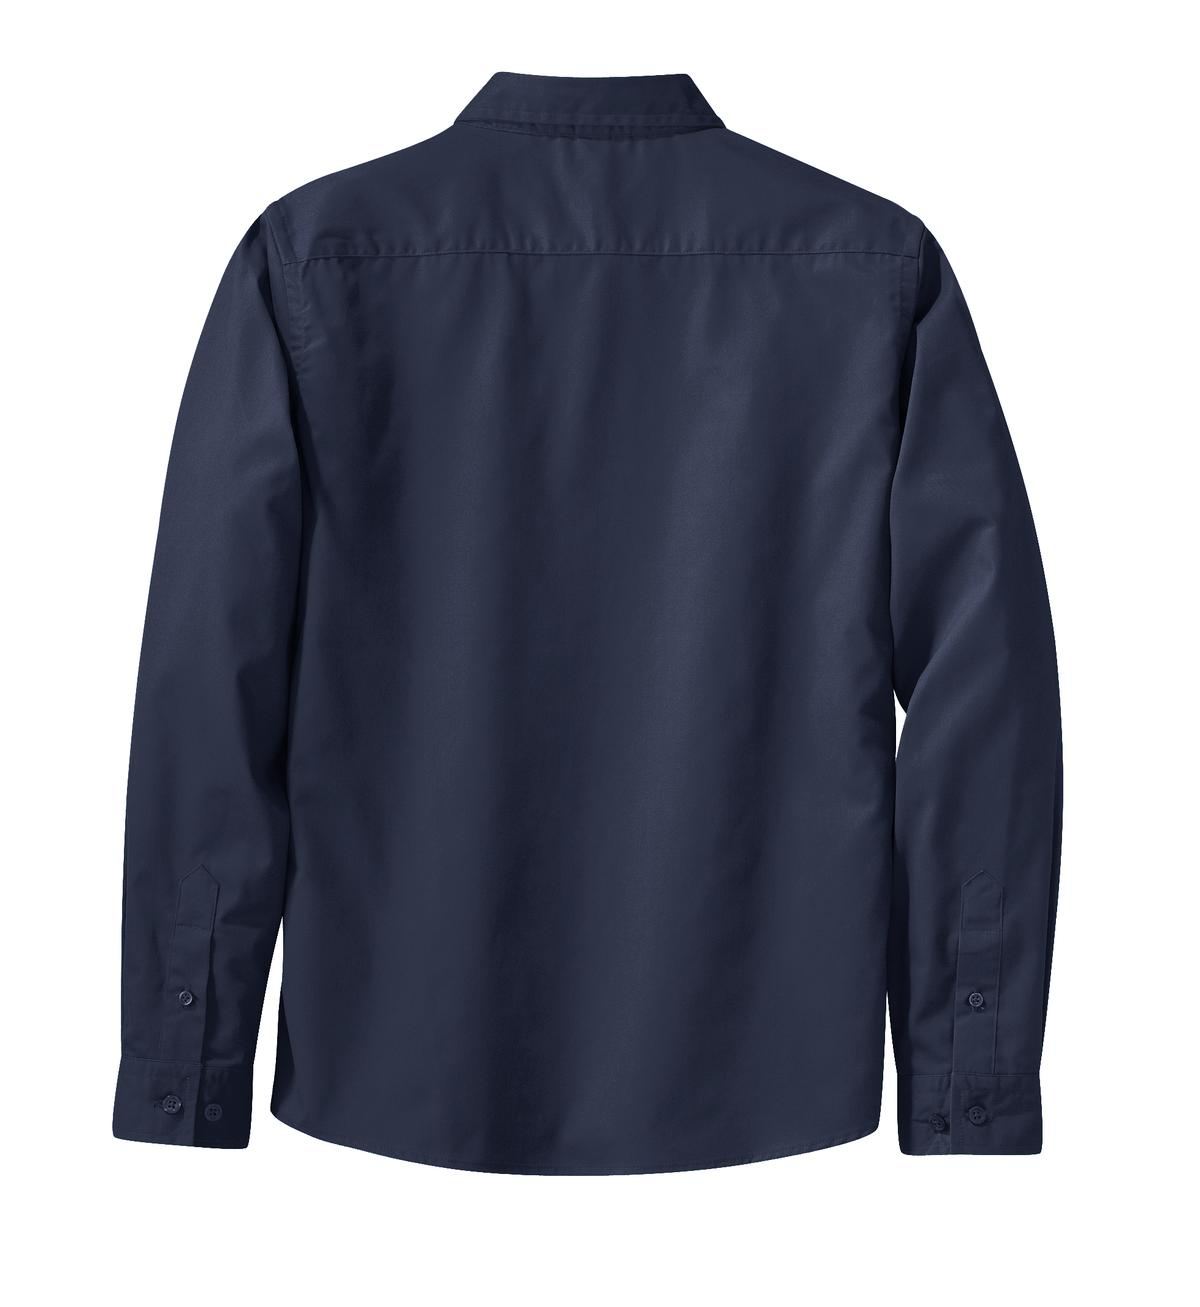 Mafoose Women's Long Sleeve Easy Care Shirt Navy/Light Stone-Back